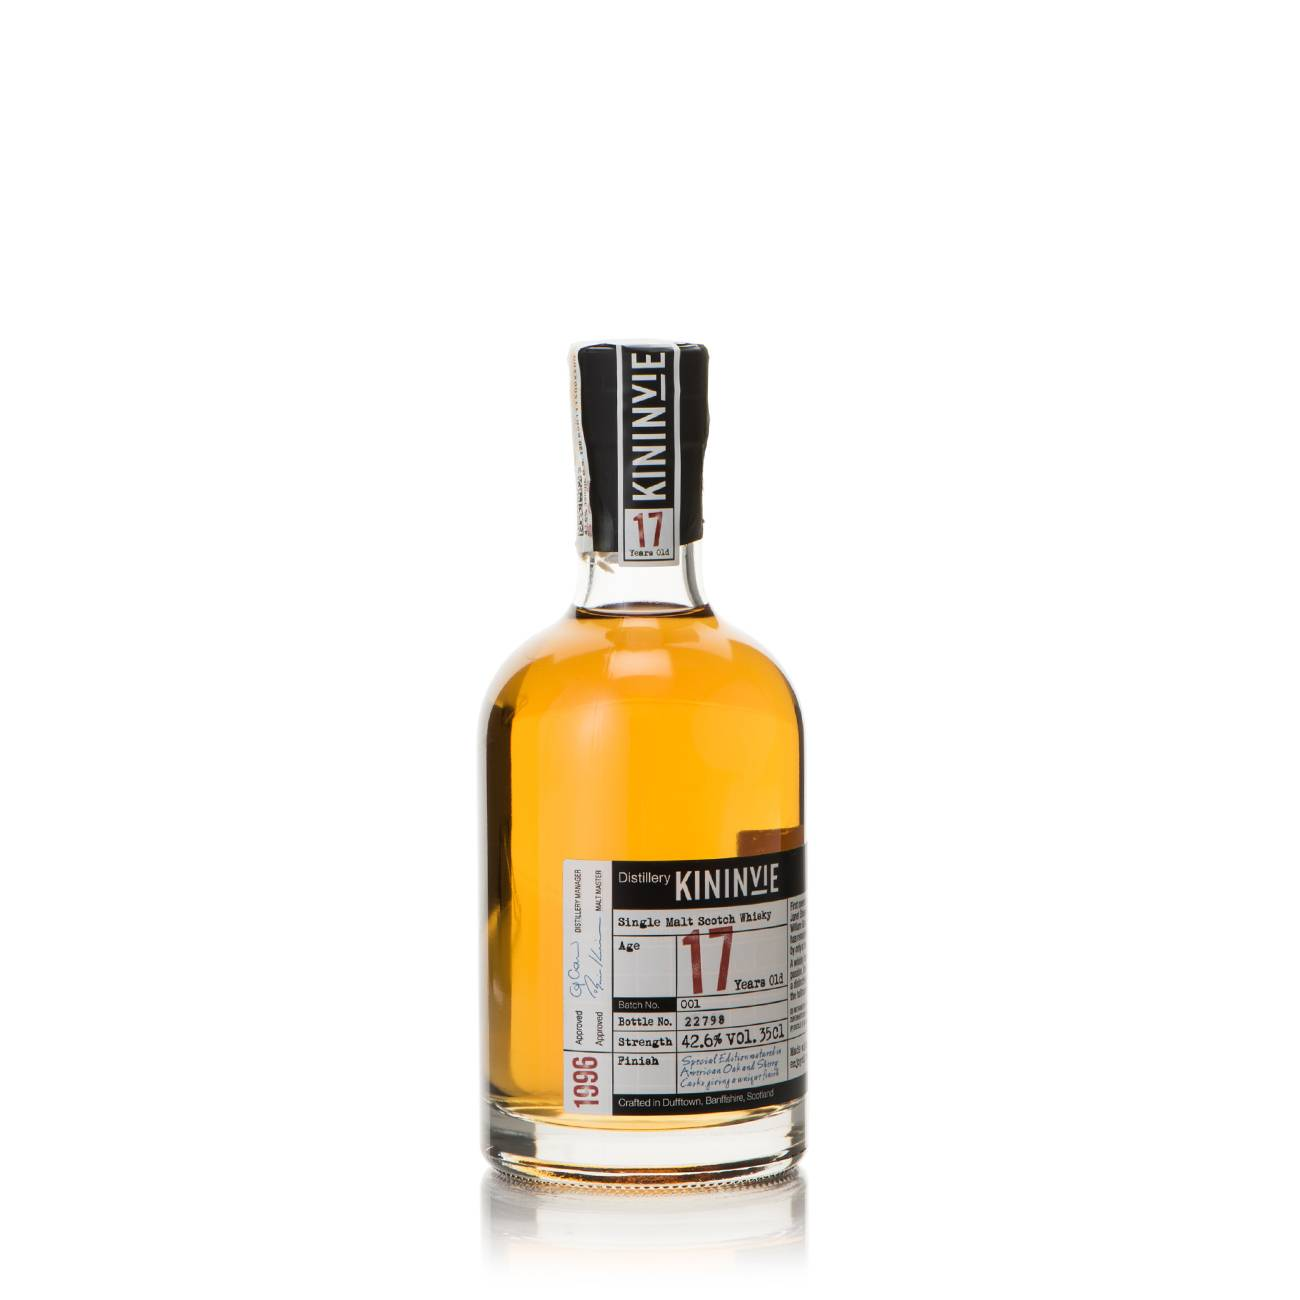 Whisky scotian, 17 Years 350 ML, Kininvie